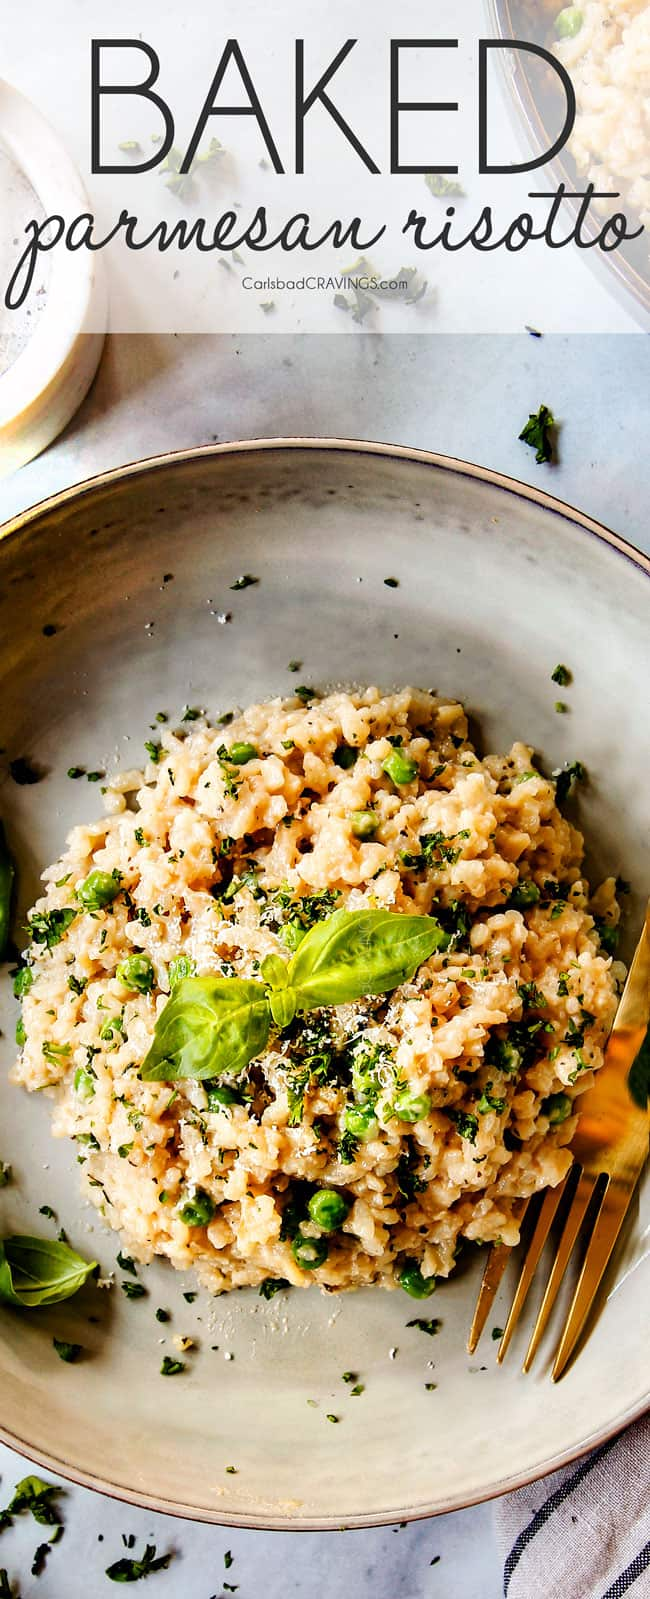 top view of Parmesan risotto recipe in a grey dish garnished with basil and parsley